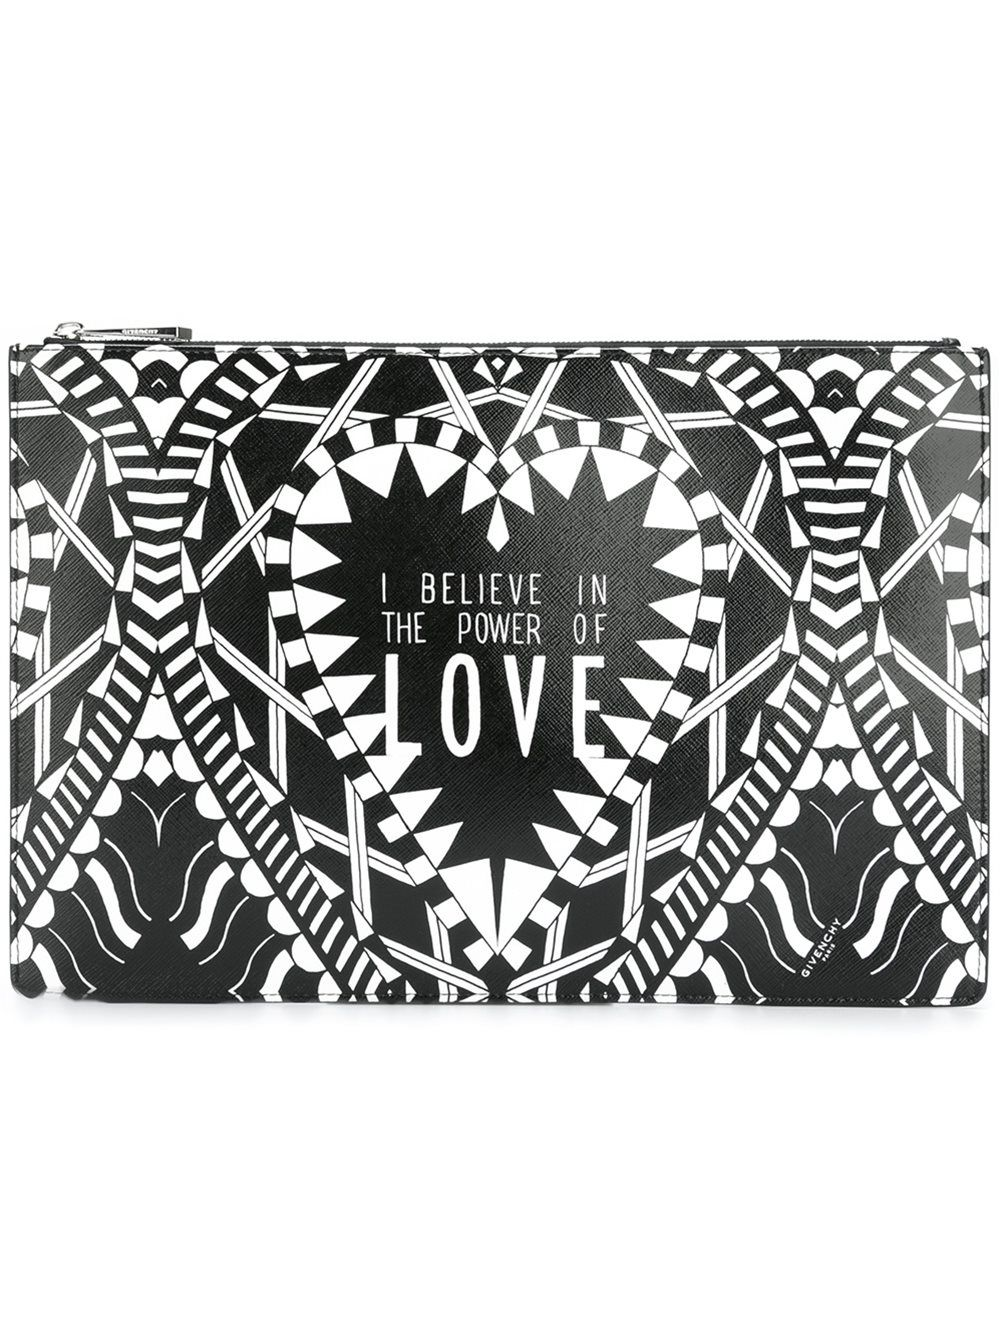 GIVENCHY power of love printed clutch  7bce2a6810d9d